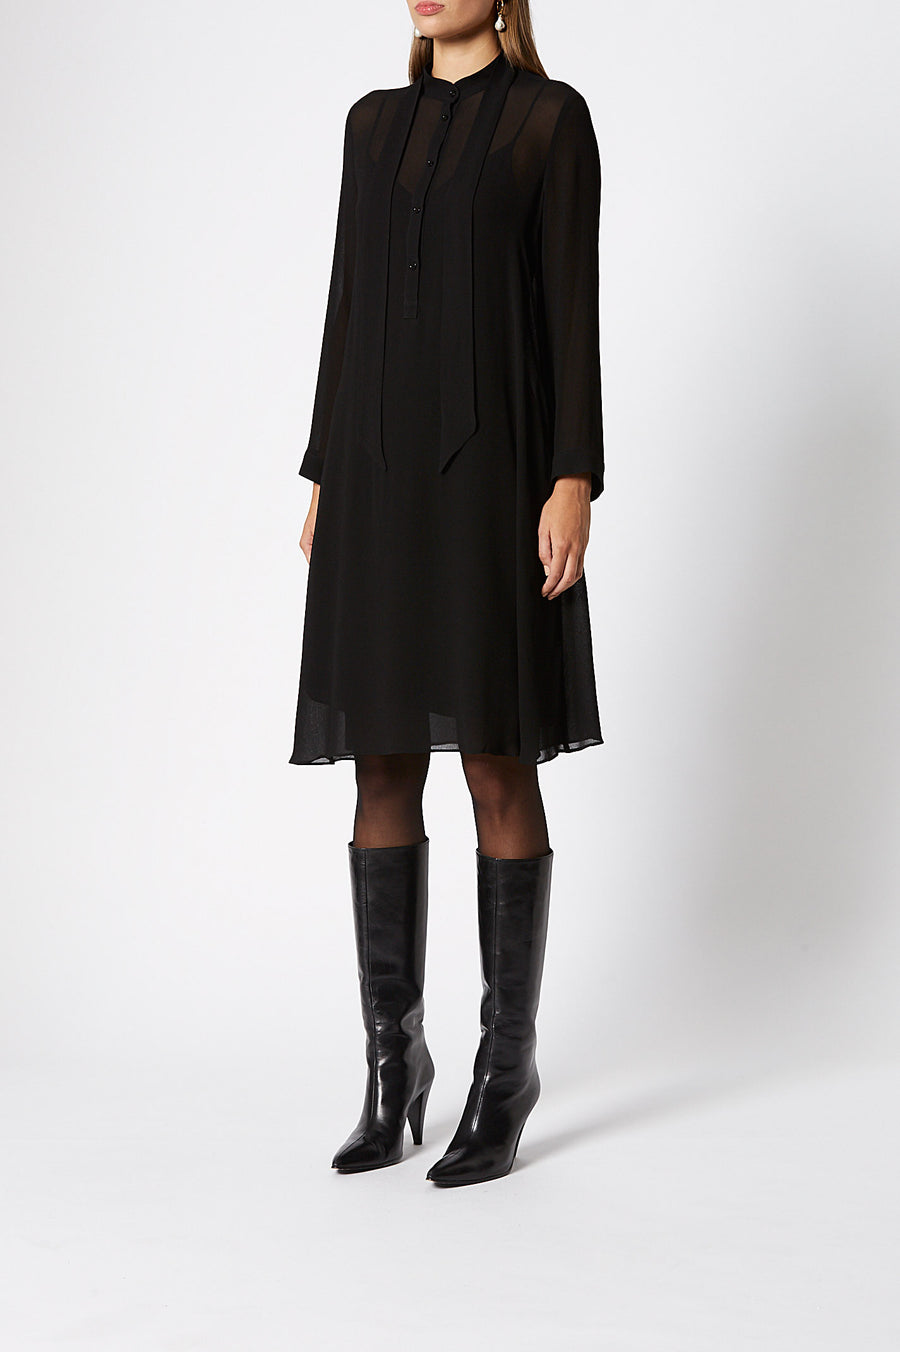 Memphis Dress, 100% silk, long sleeves, does up back with button fastening, short style worn above knee, Color Black